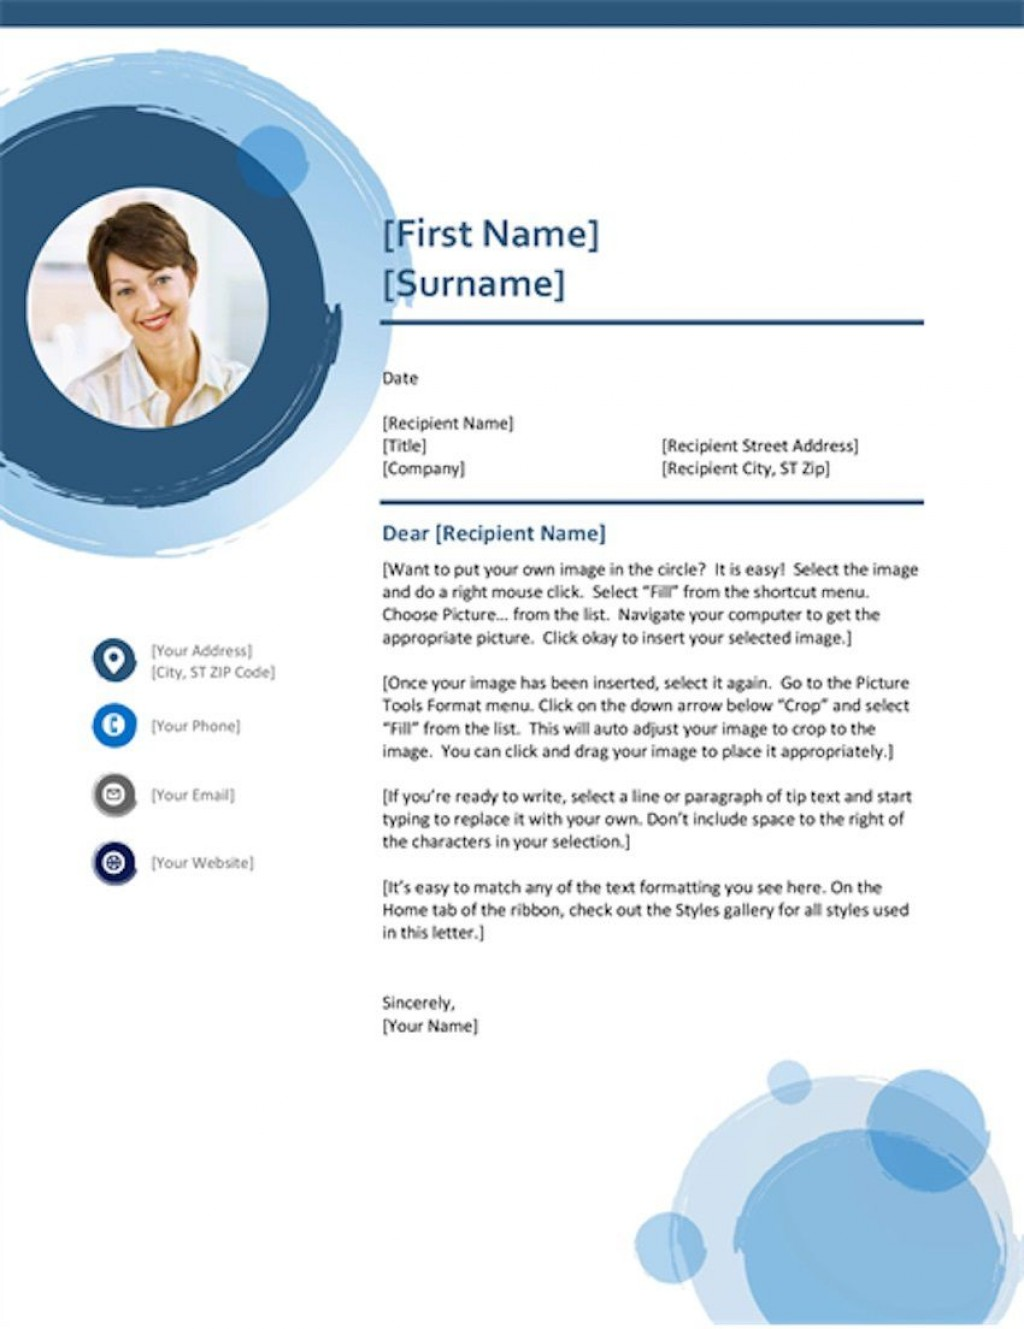 003 Imposing Resume Cover Letter Template Free Image  Simple Online MicrosoftLarge